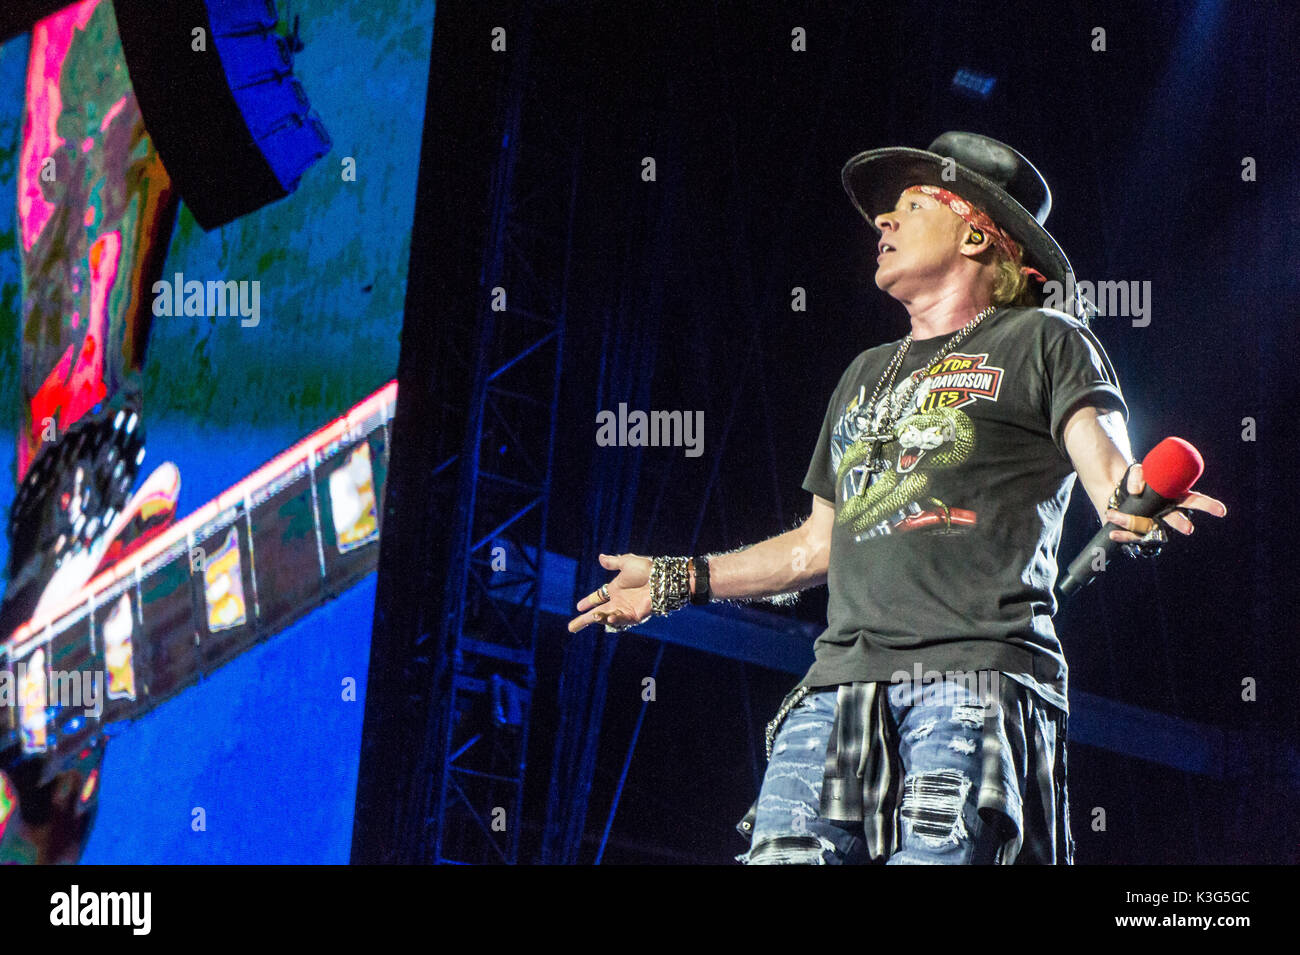 axl rose stock photos axl rose stock images alamy. Black Bedroom Furniture Sets. Home Design Ideas